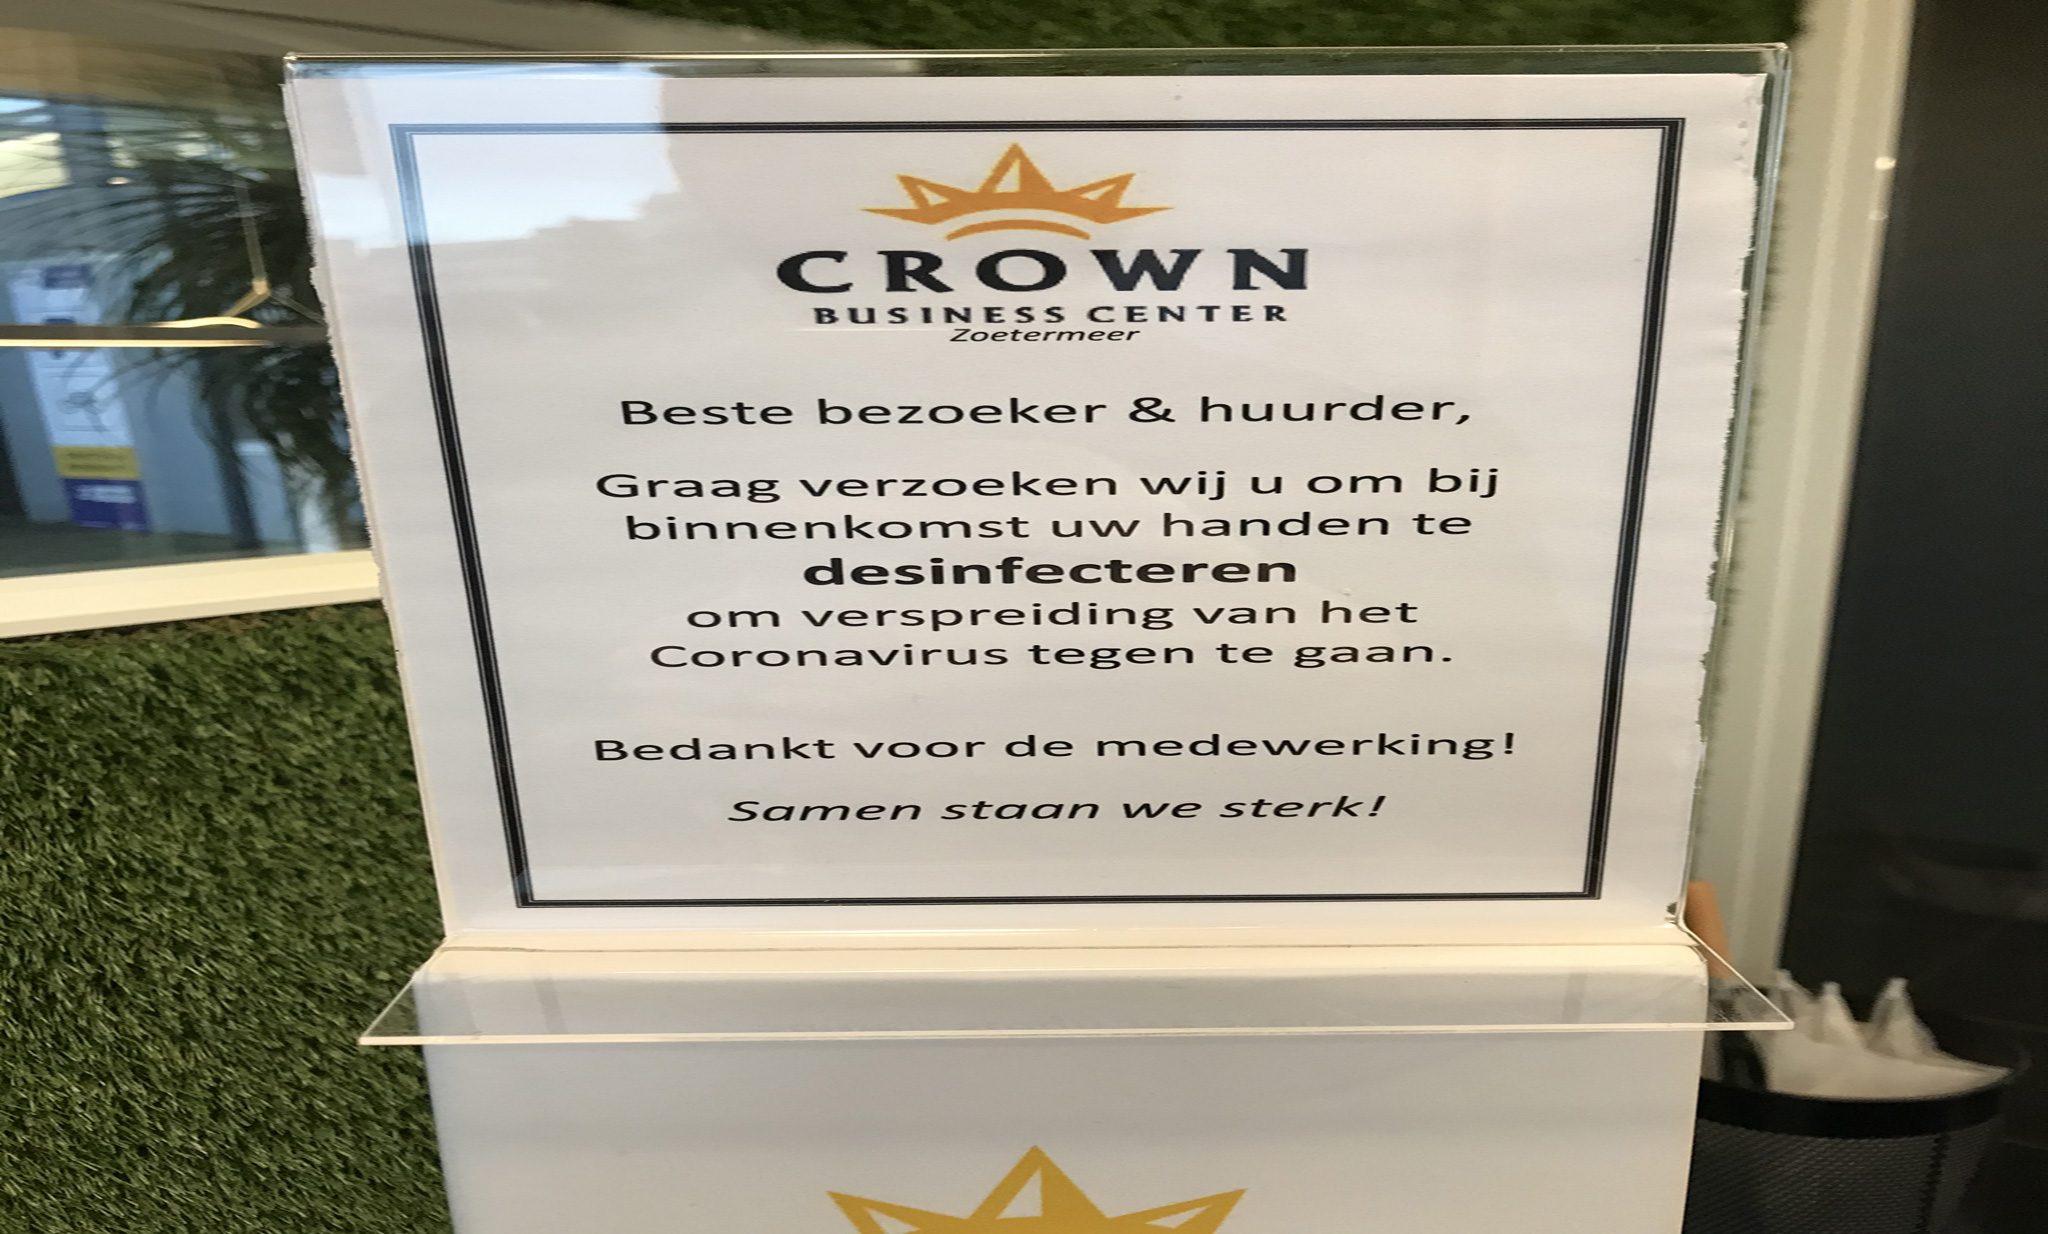 Crown Business Center Zoetermeer